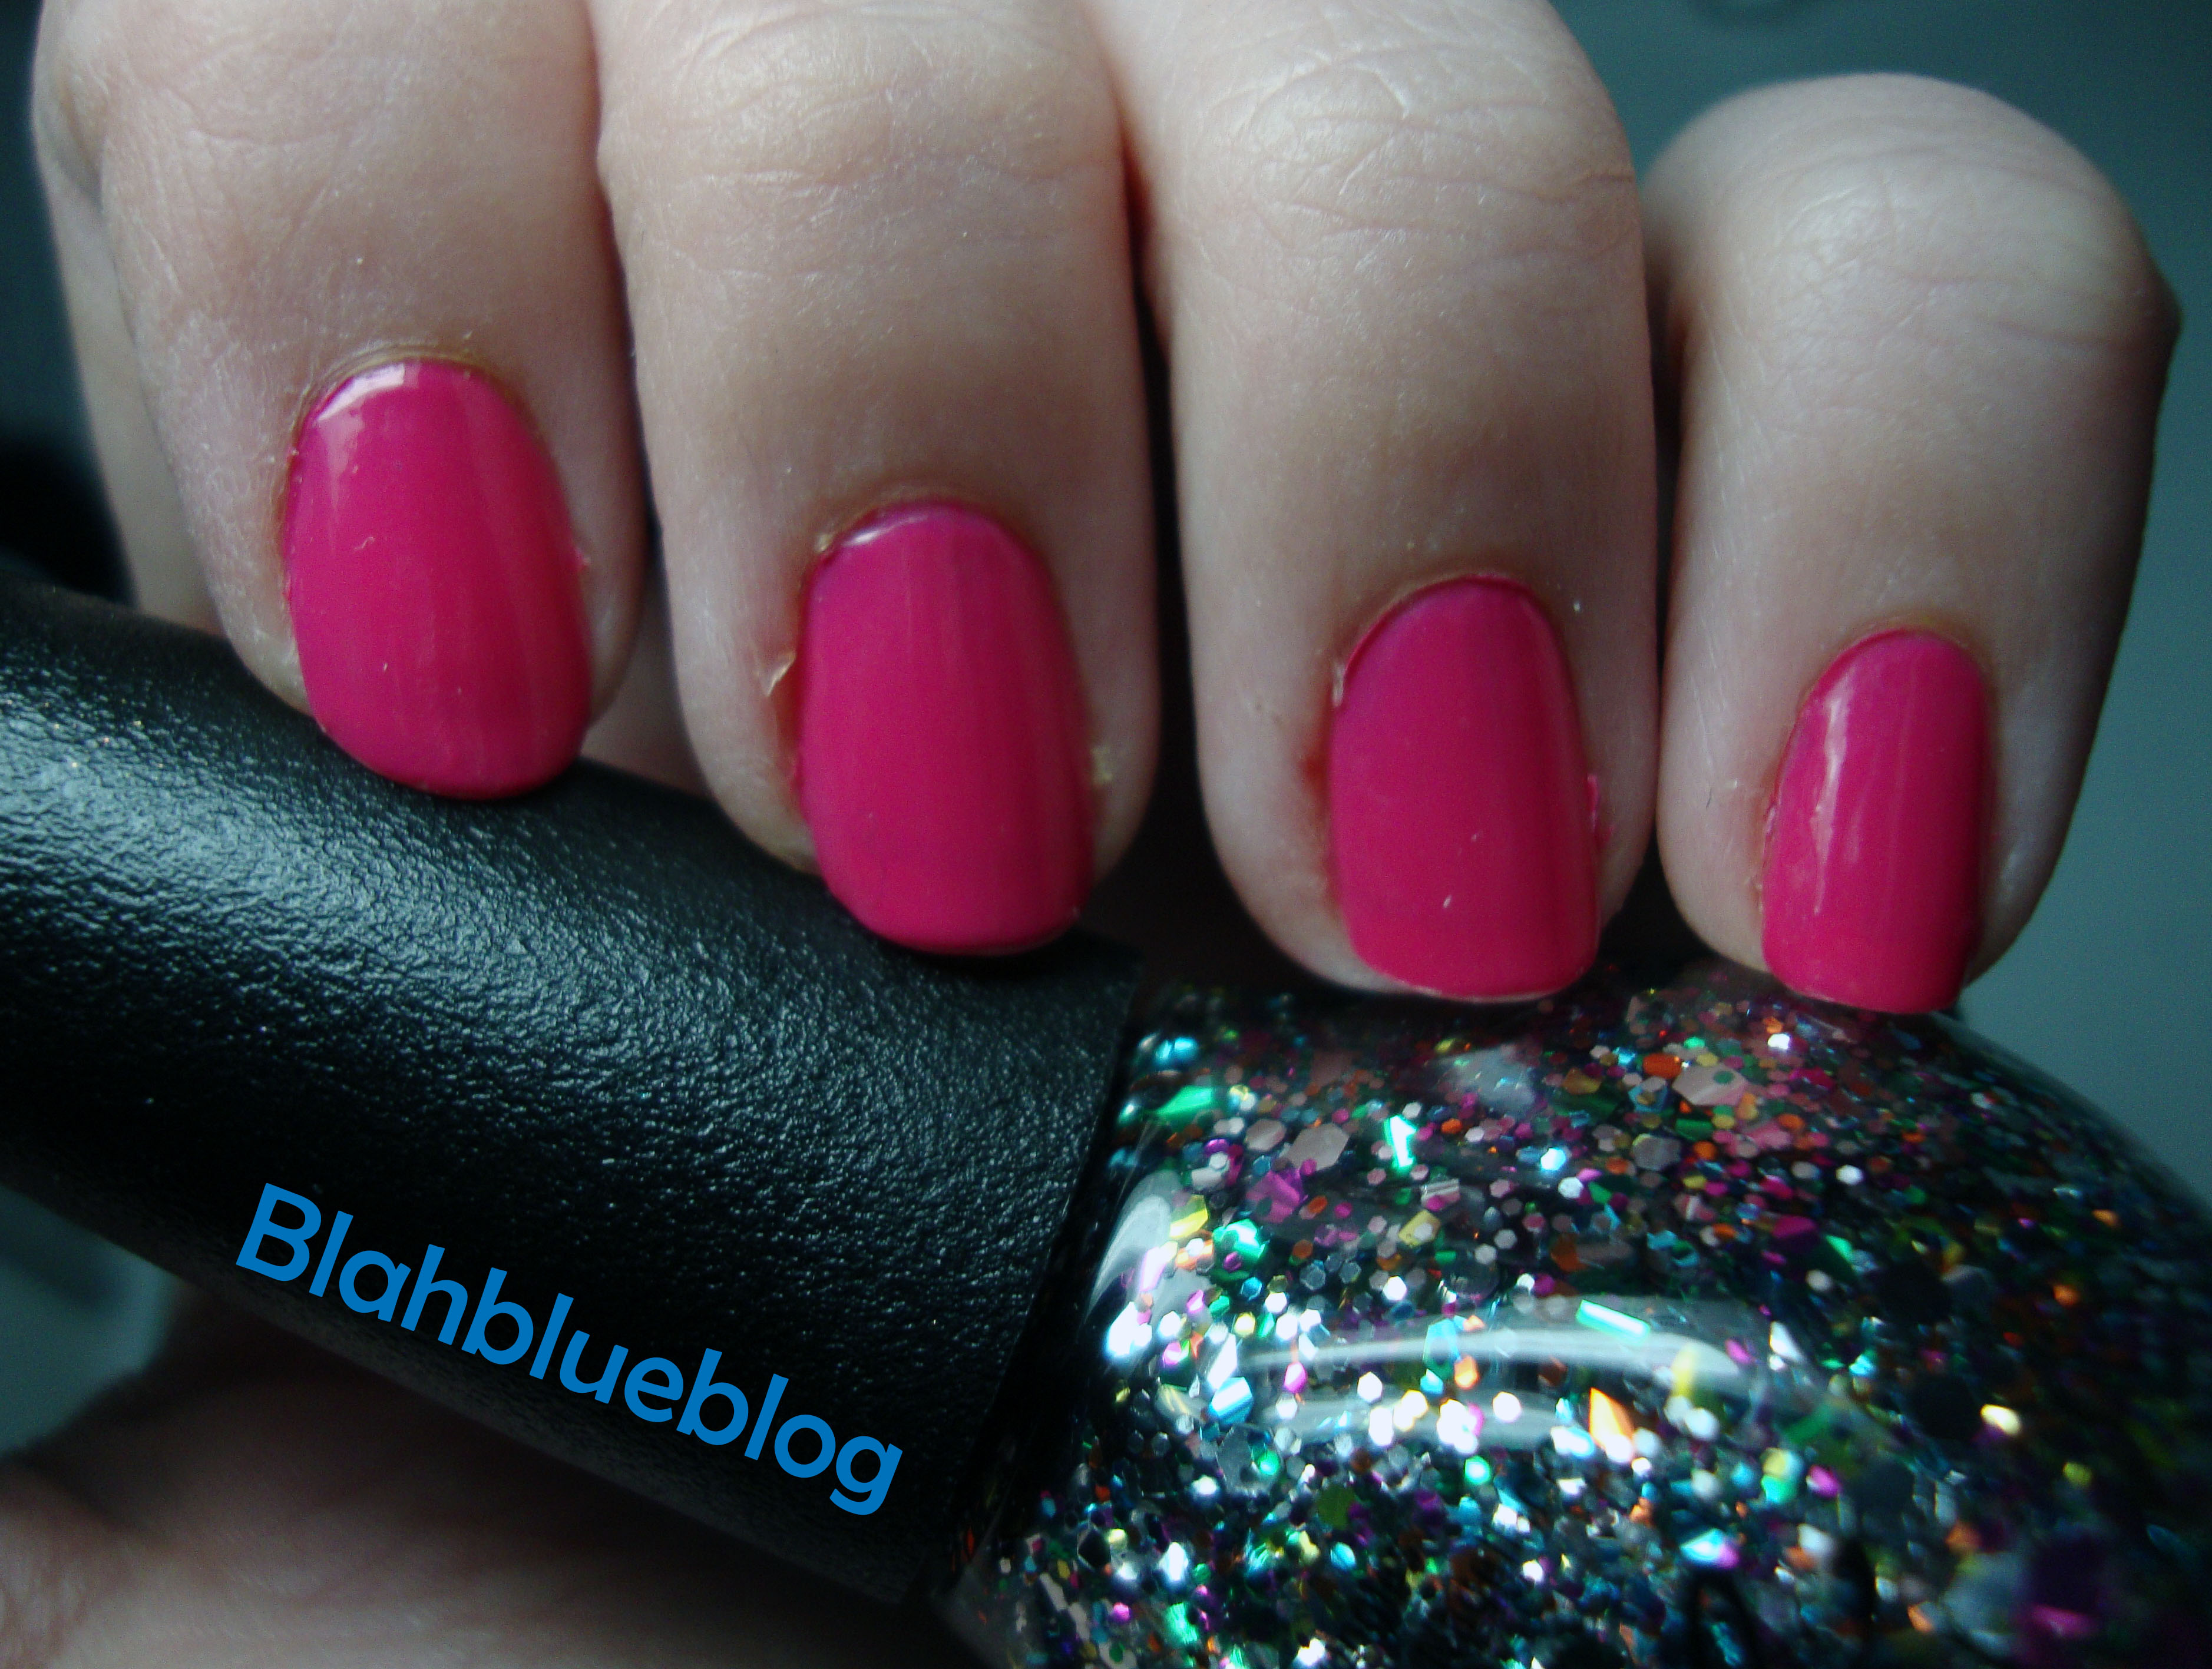 Sephora Arm Candy and Rainbow in the S-kylie | blahblueblog